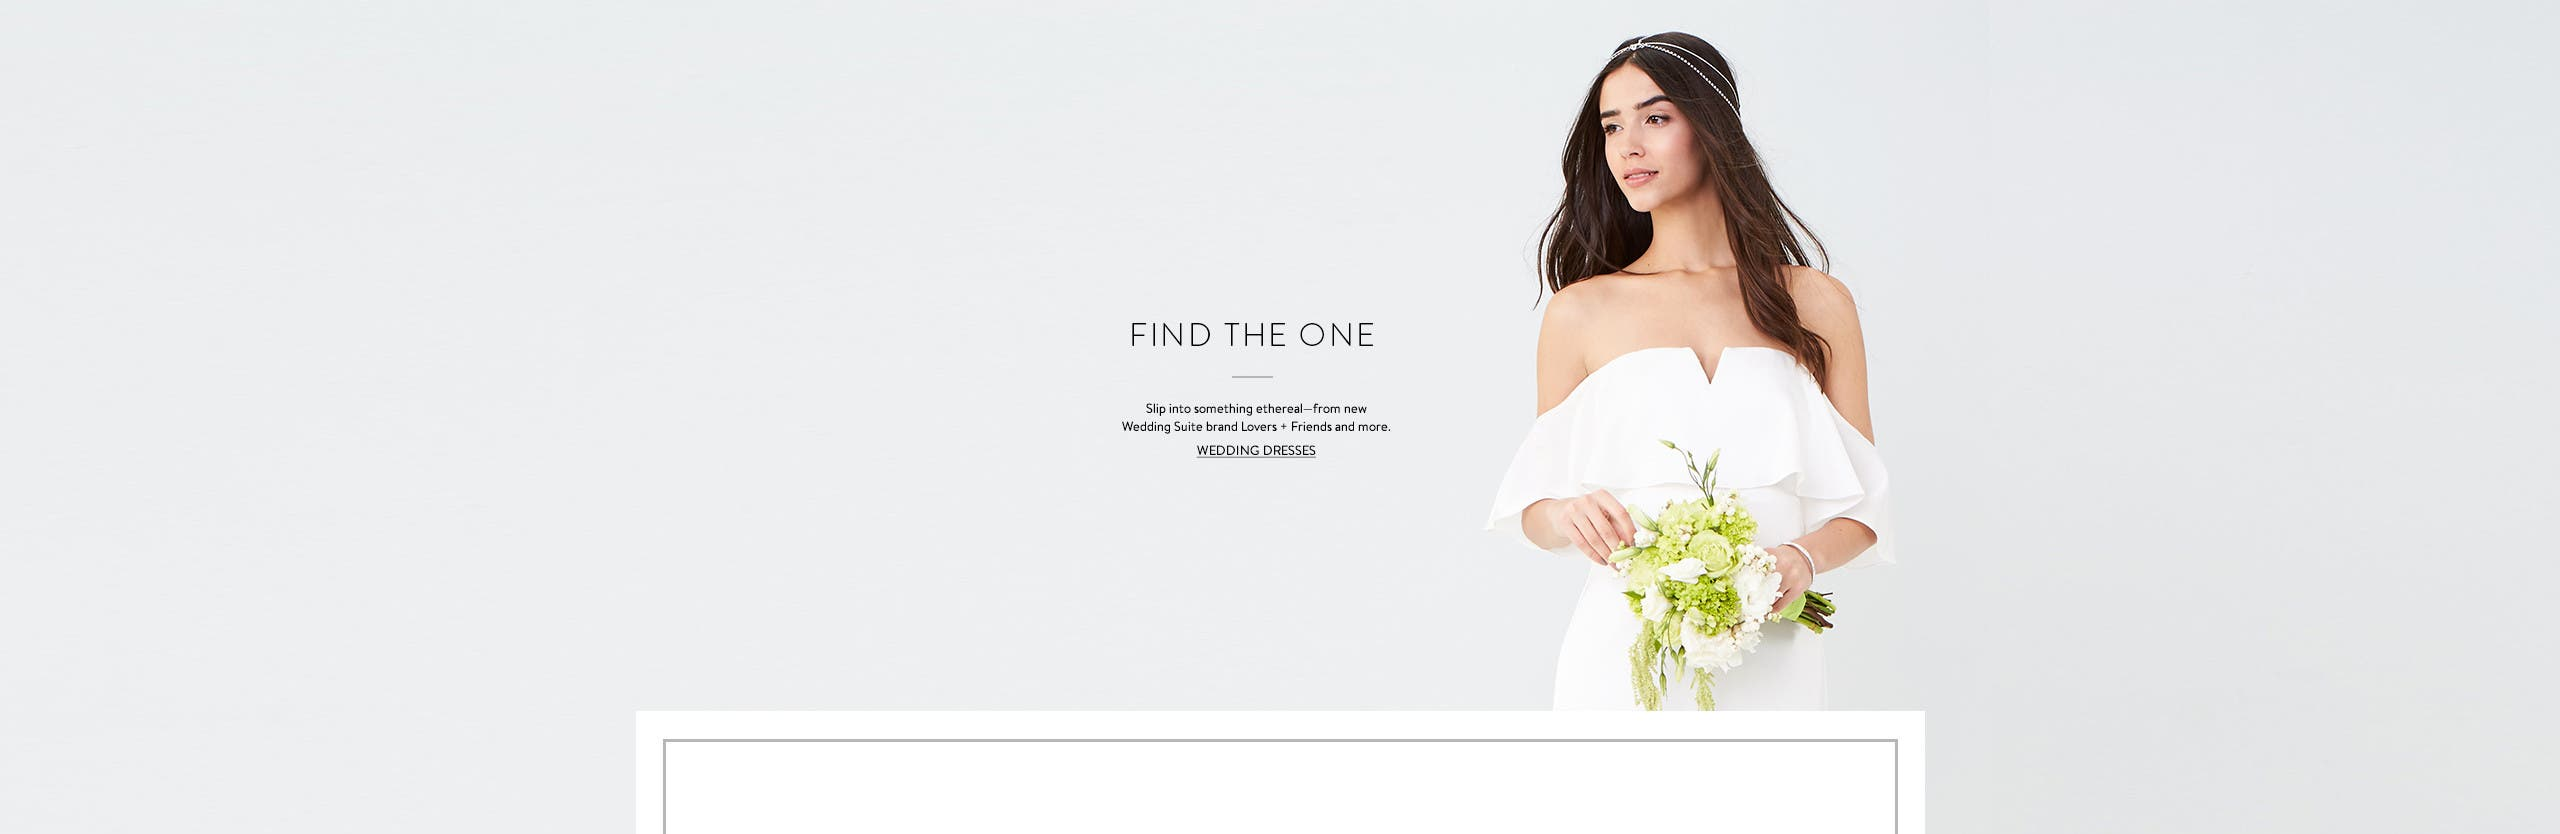 Find the one: wedding gowns from Lovers + Friends and more.